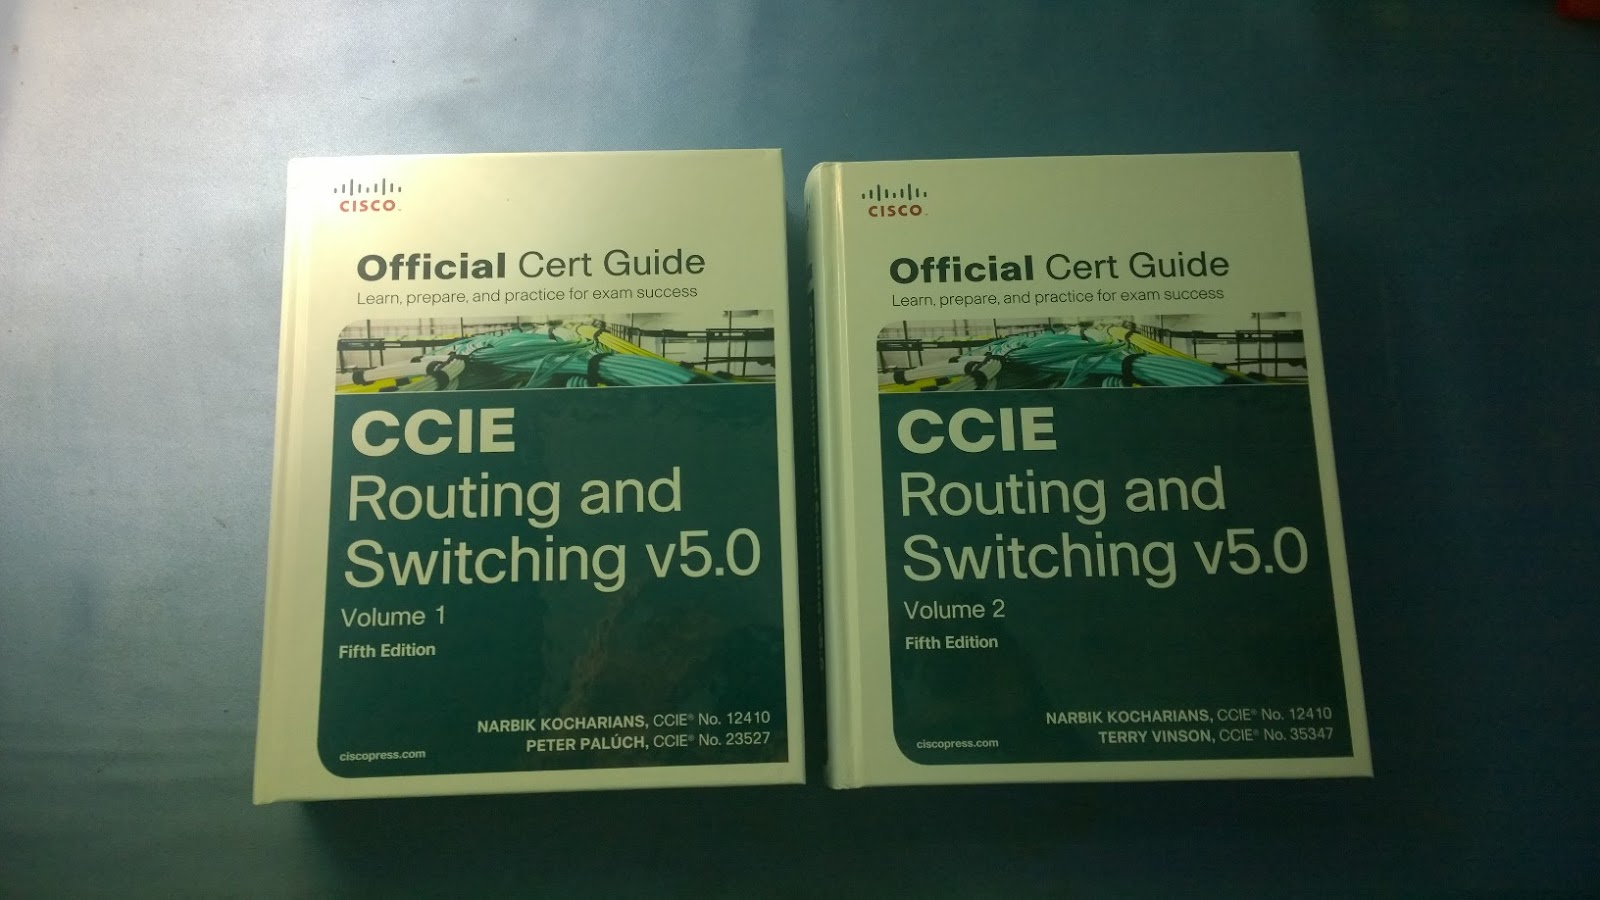 CCIE Routing & Switching v5.0 Official Cert Guide Library.